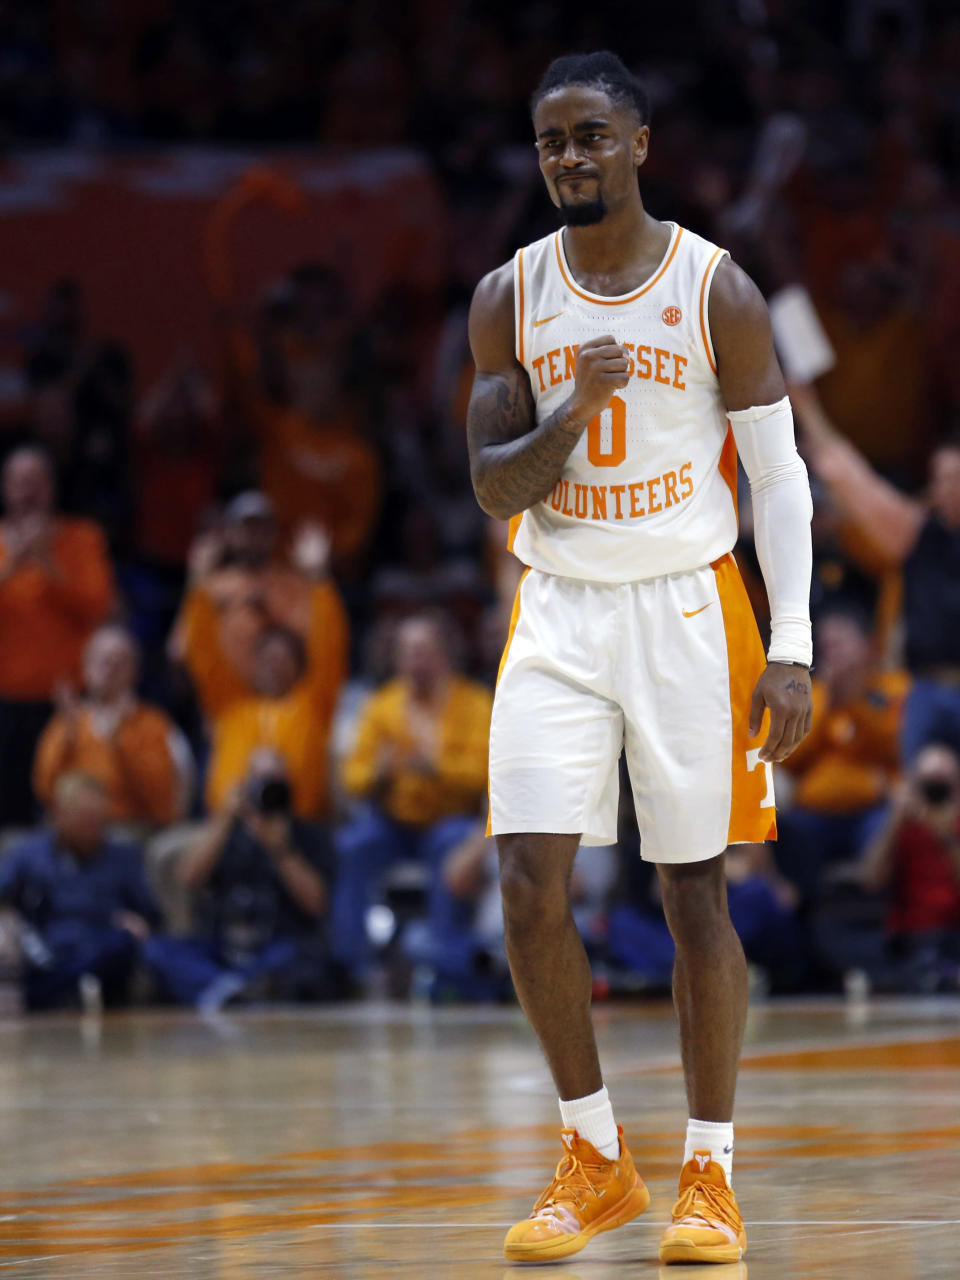 Tennessee guard Jordan Bone (0) reacts to hitting a three-point shot during the second half of an NCAA college basketball game against Kentucky Saturday, March 2, 2019, in Knoxville, Tenn. Tennessee won 71-52. (AP Photo/Wade Payne)